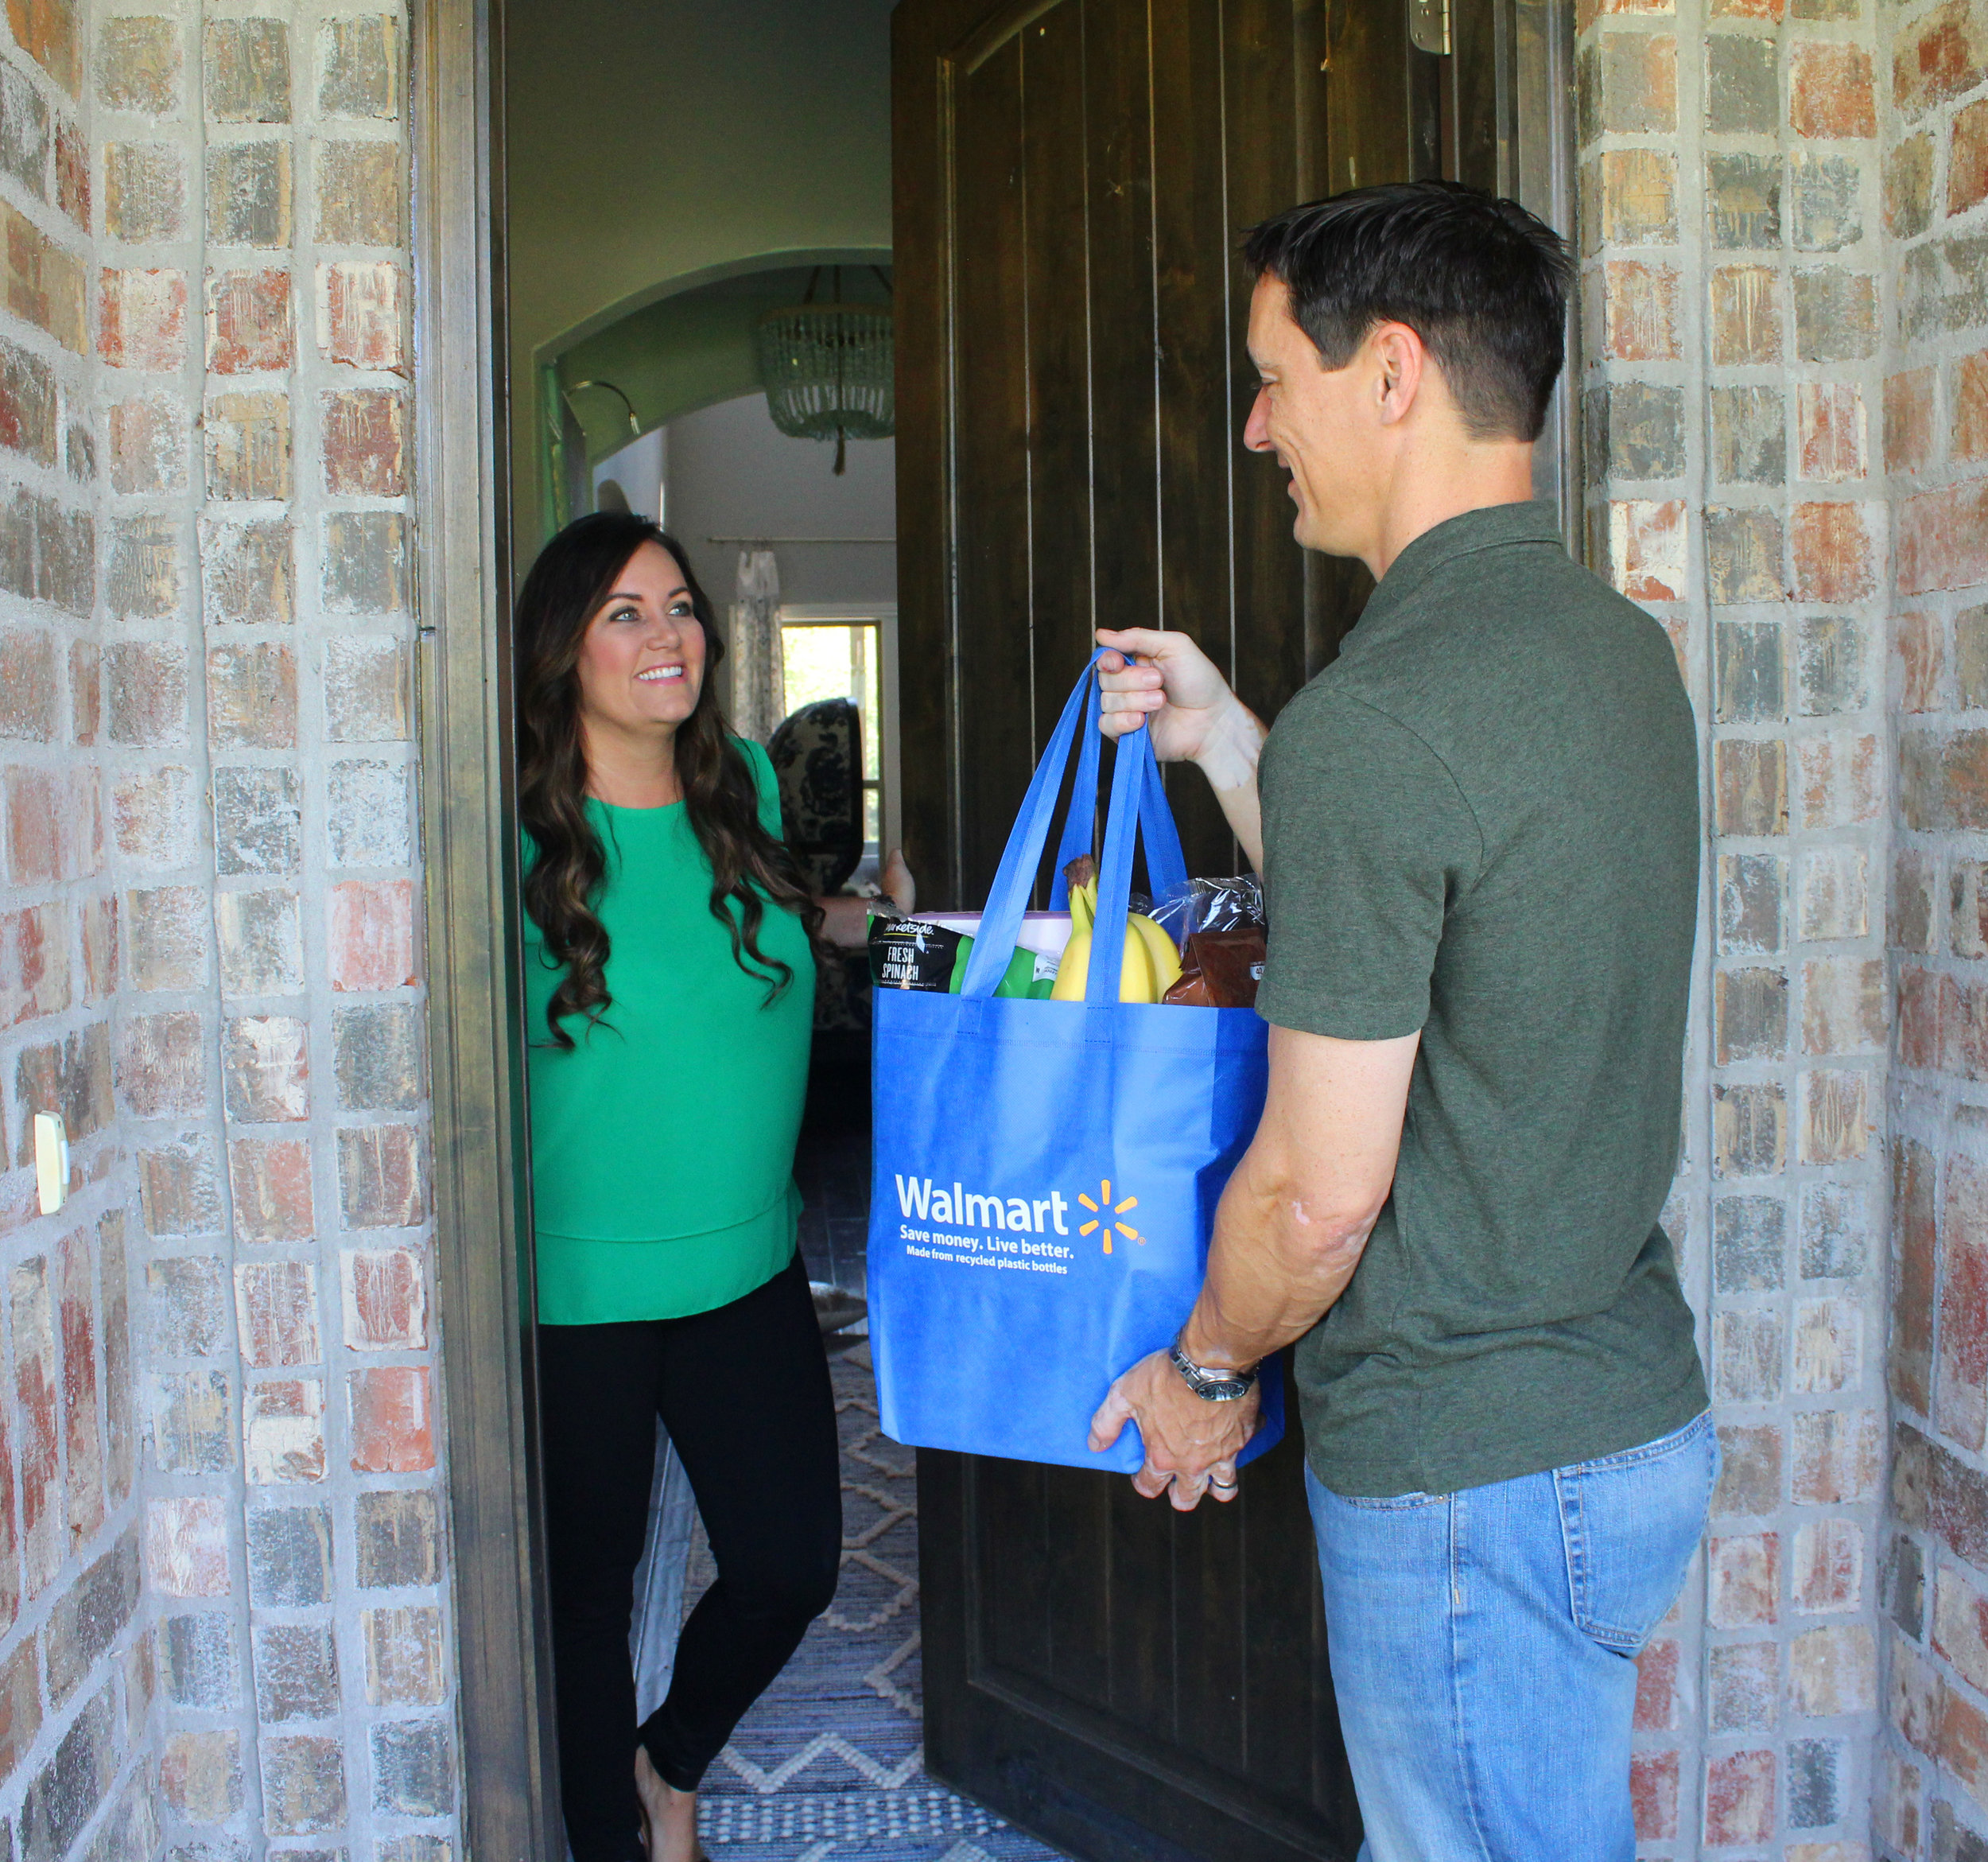 Why Spark Delivery? - As an independent contract driver, you can earn more money picking up and delivering groceries in your area. Your business on your schedule, your tips (100%), your peace of mind (No passengers).